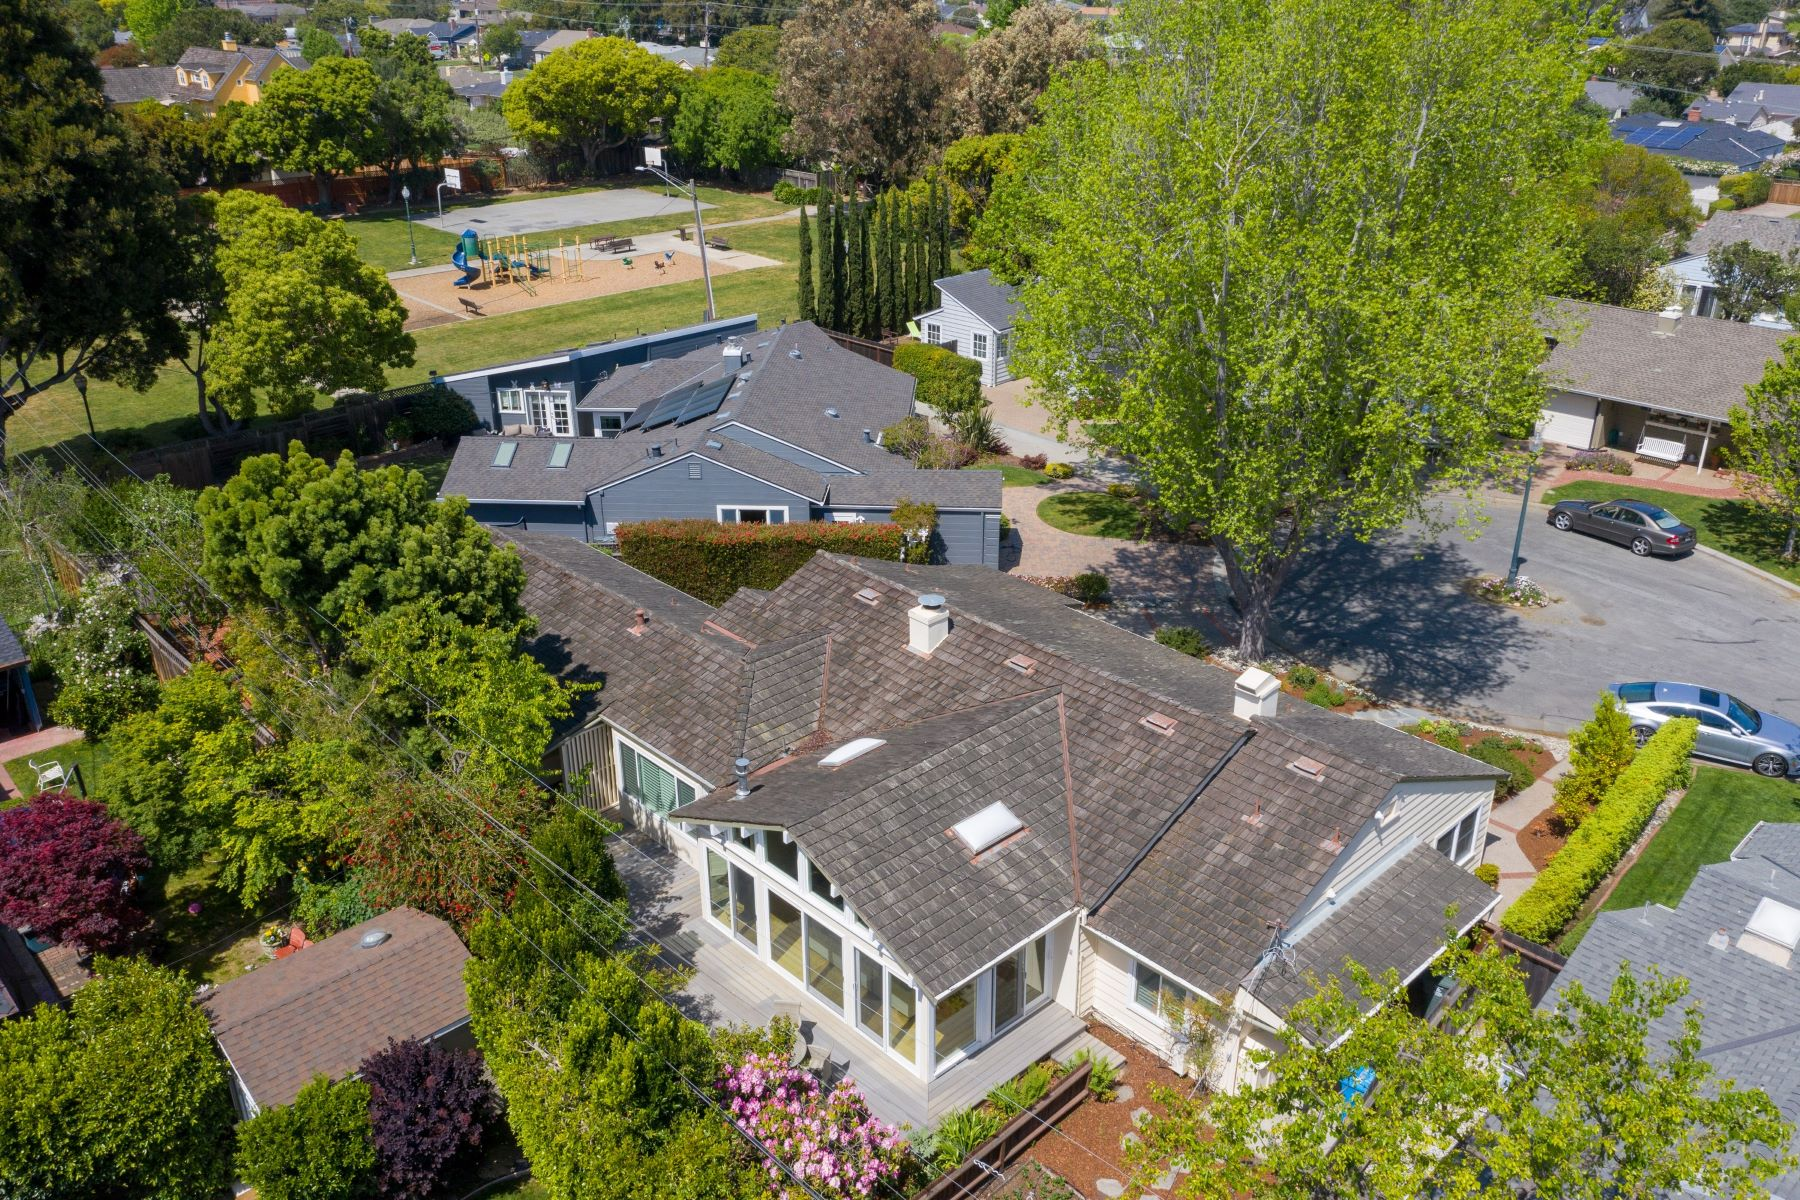 Single Family Home for Active at Ideally located for Urban Living 237 Arbor Lane San Mateo, California 94403 United States